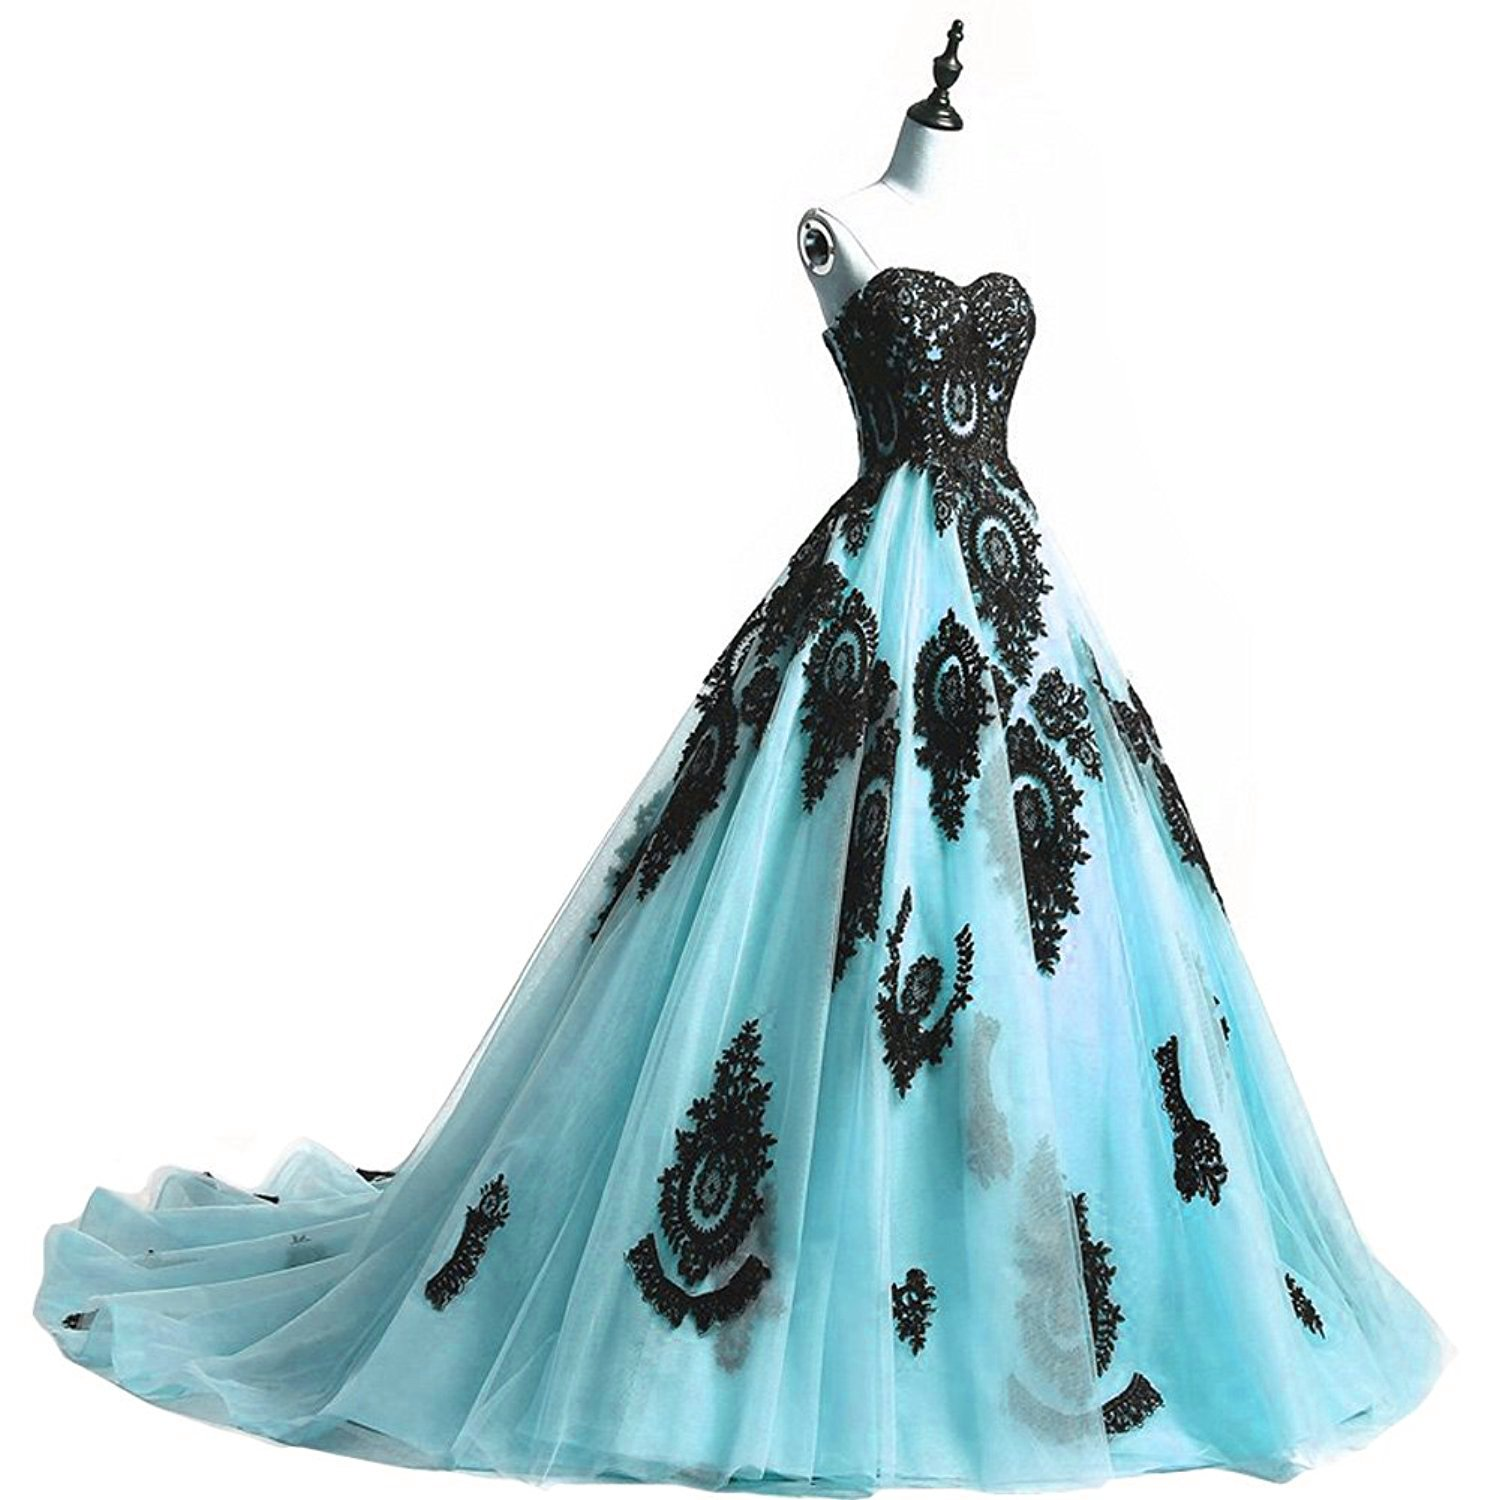 60b1401461bc9 YSMei Womens Strapless Tulle Evening Dress Lace Appliqued Formal Ball Gown  JR415 at Amazon Women s Clothing store